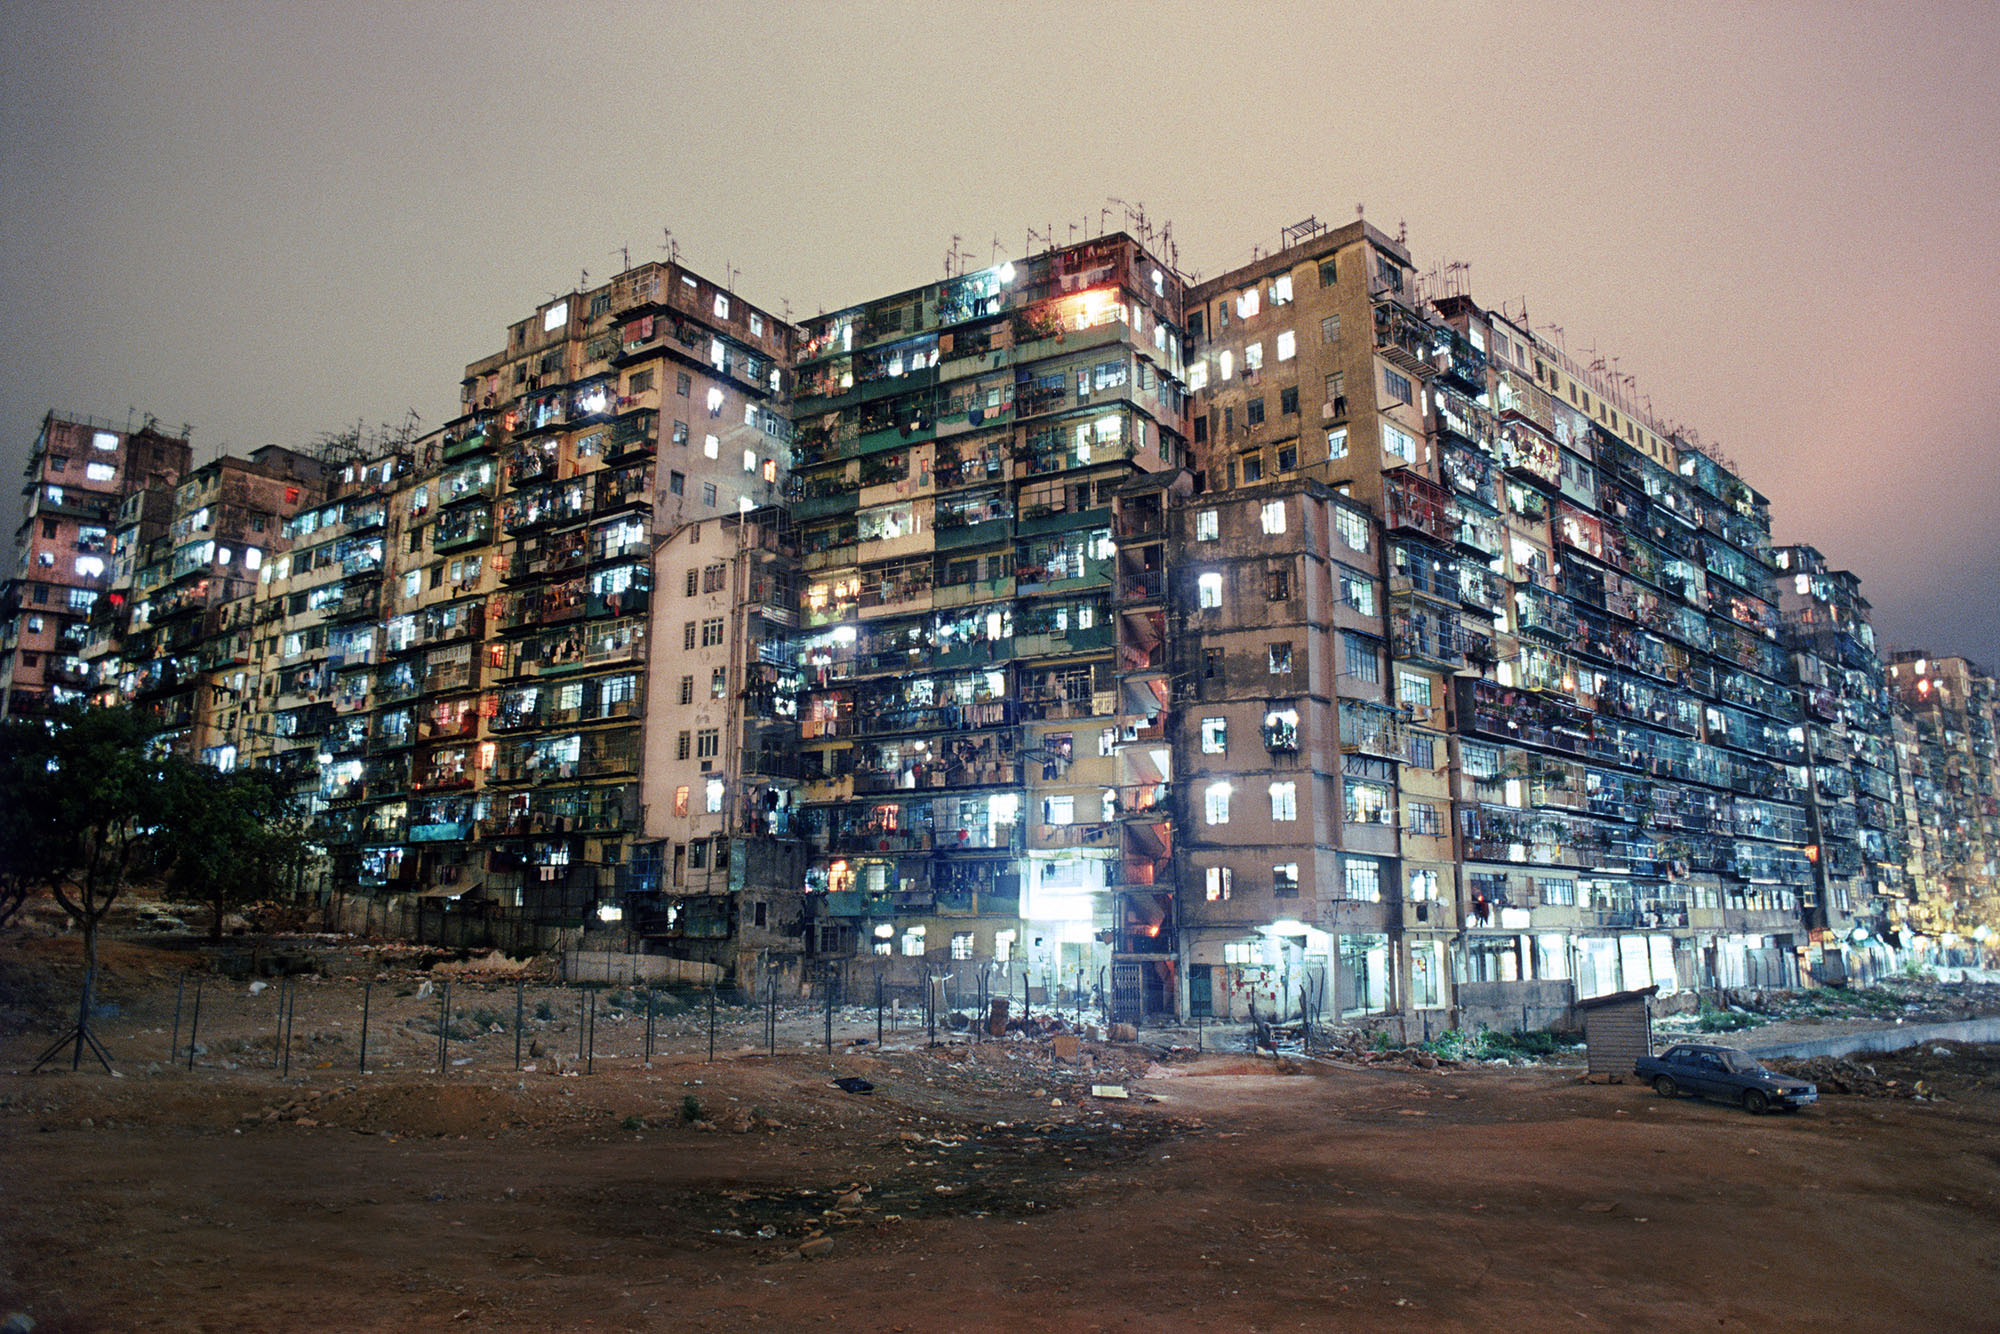 Greg Girard - Kowloon Walled City, Hong Kong 1987